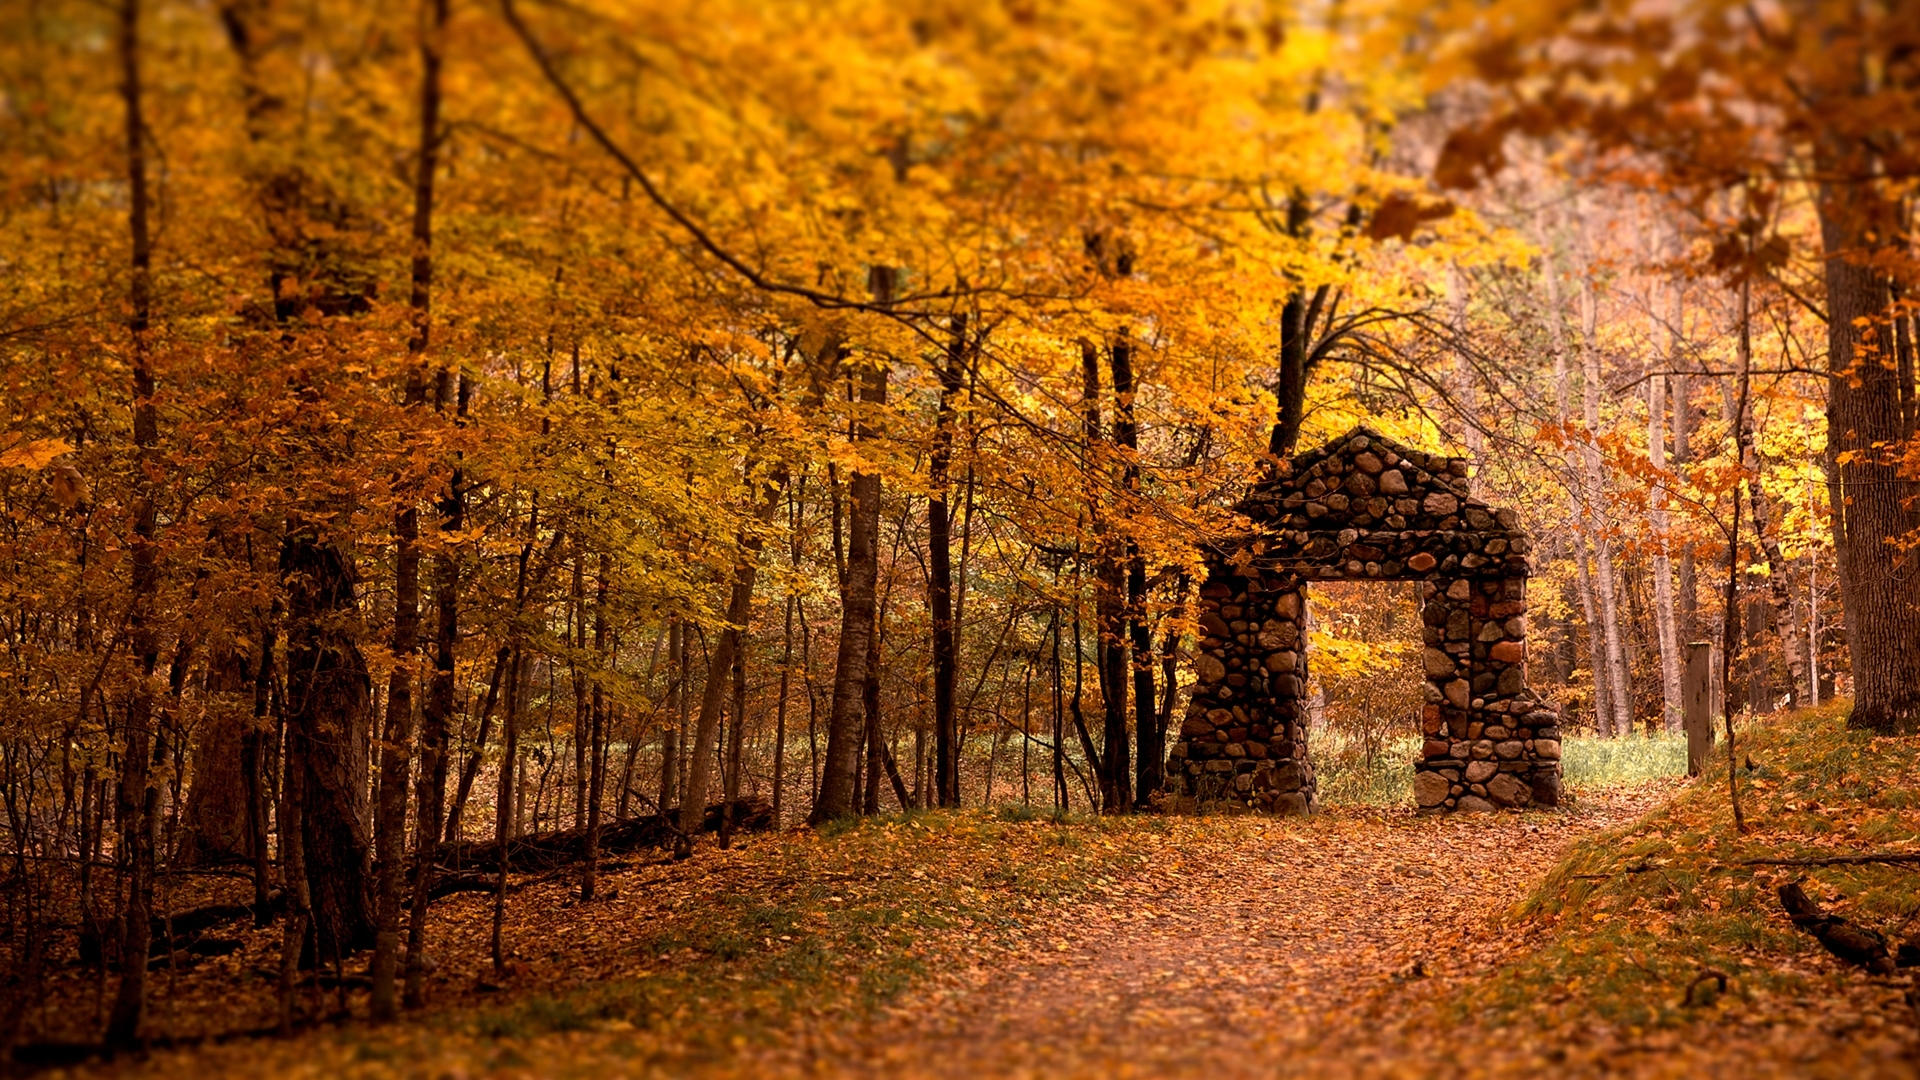 27829 download wallpaper Landscape, Trees, Autumn, Leaves screensavers and pictures for free